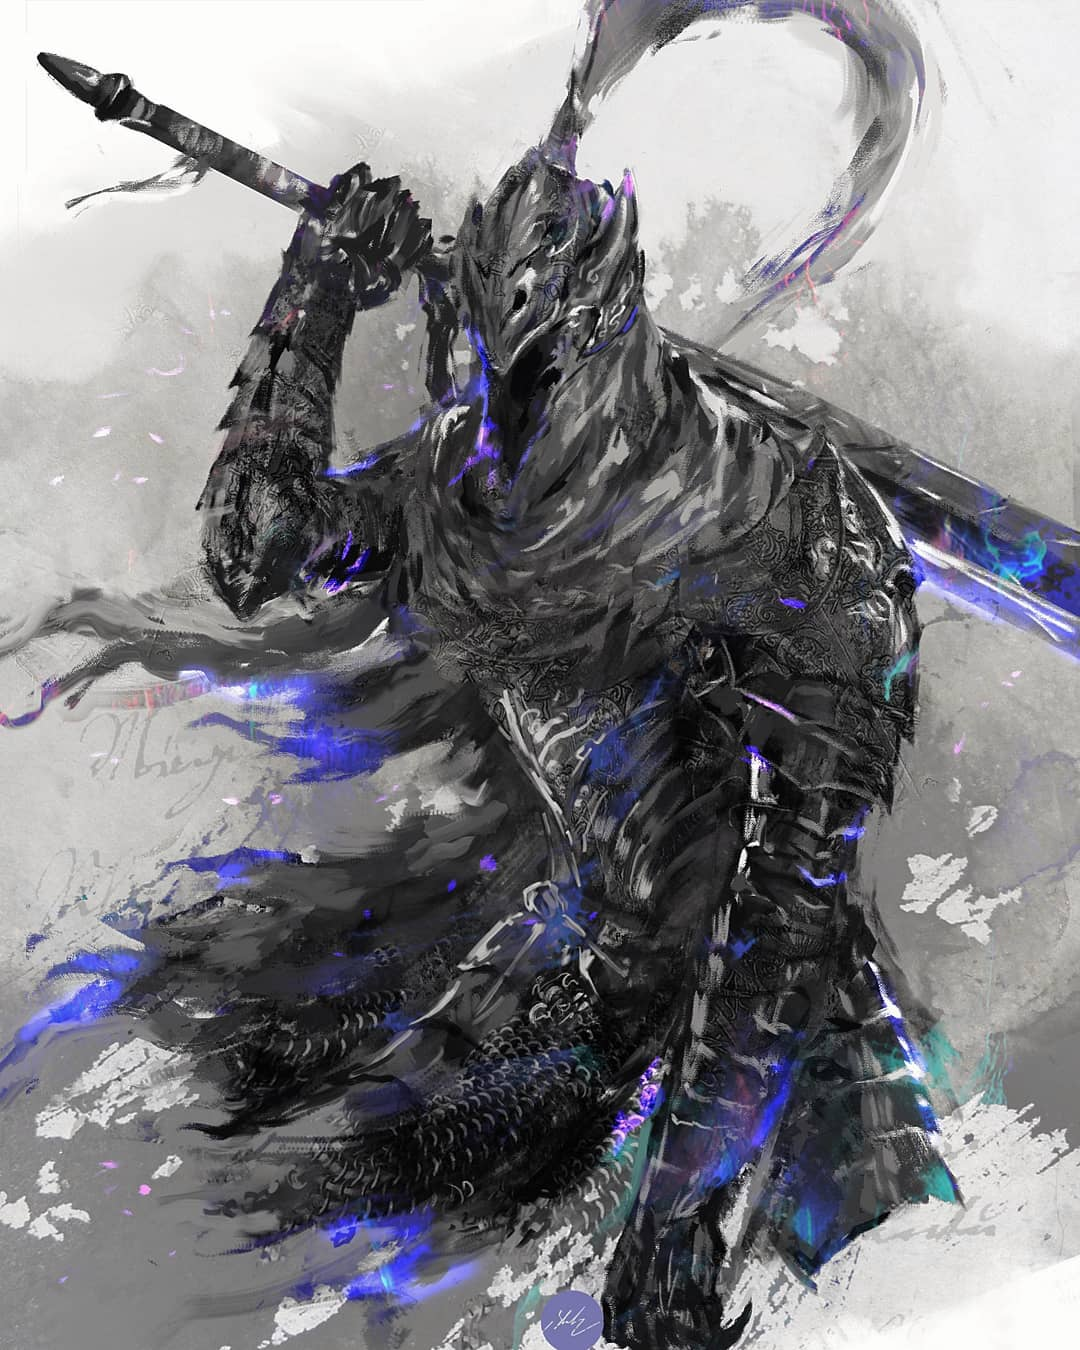 1boy armor artorias_the_abysswalker breastplate dark_souls_i full_armor gauntlets helmet highres holding holding_sword holding_weapon mail_armor male_focus pauldrons plume shimhaq shoulder_armor solo souls_(series) sword weapon